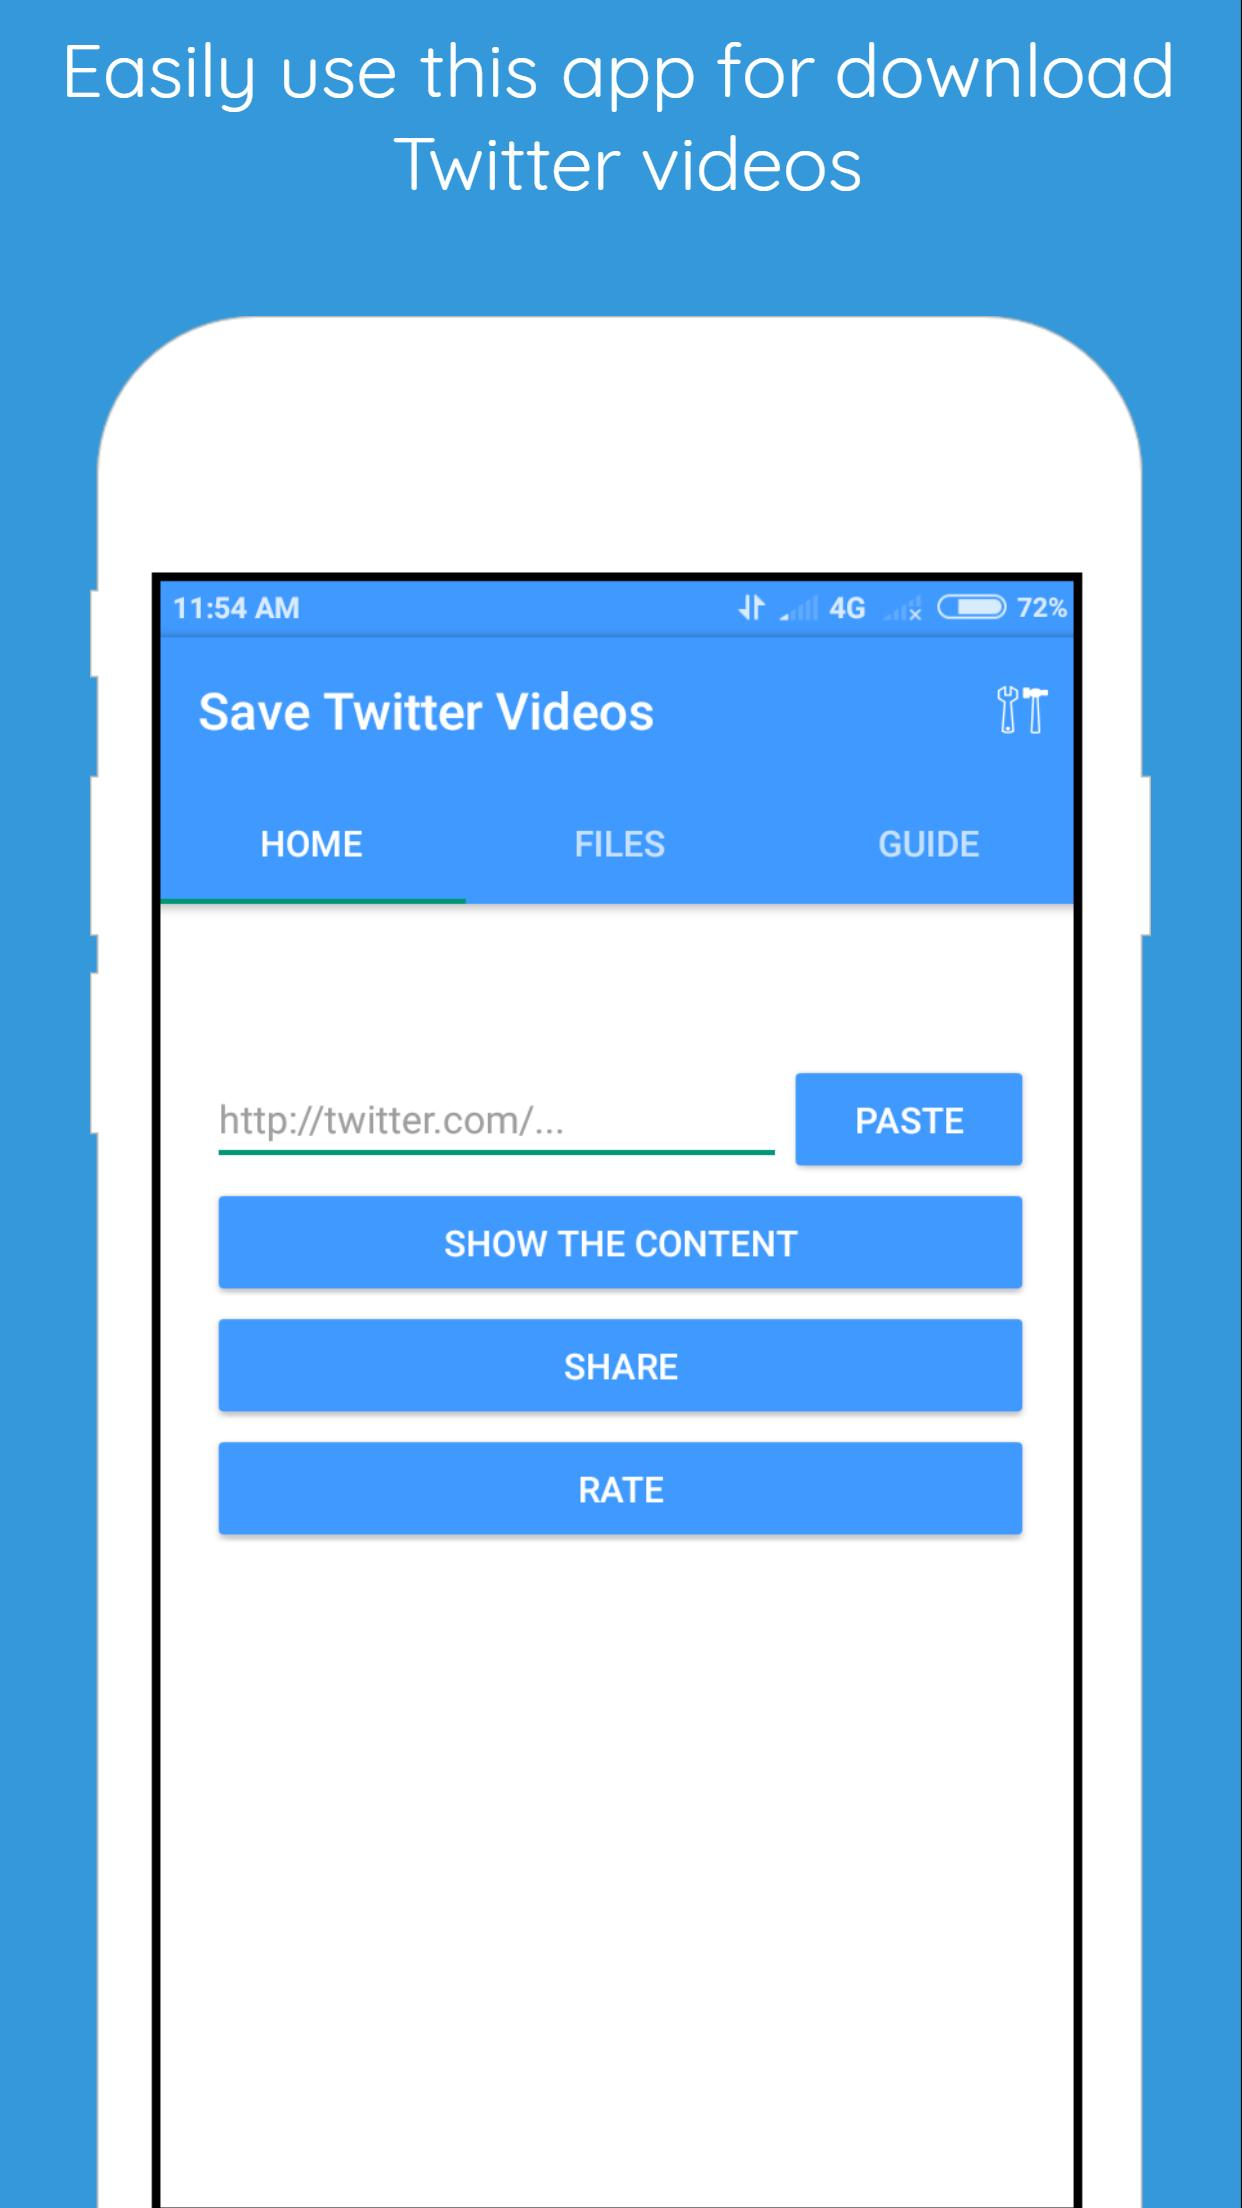 Save Twitter Videos | GIFS and Images for Android - APK Download